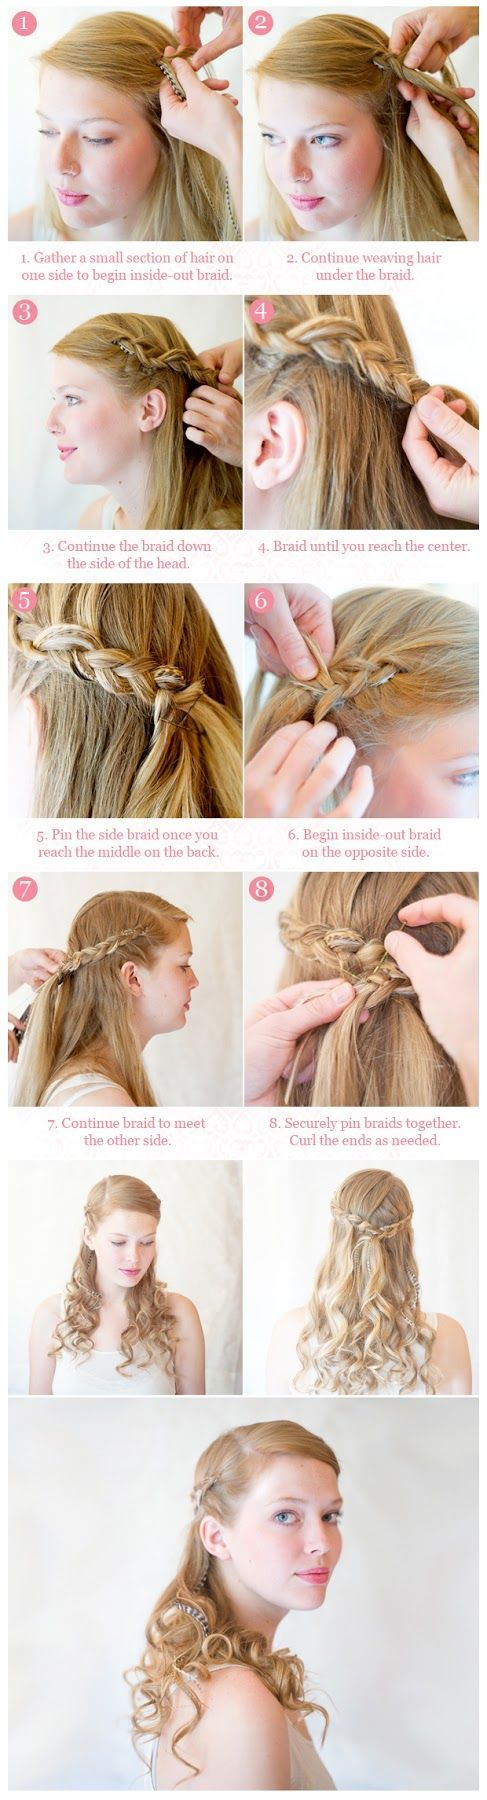 120 best images about hair on pinterest   side braid hairstyles